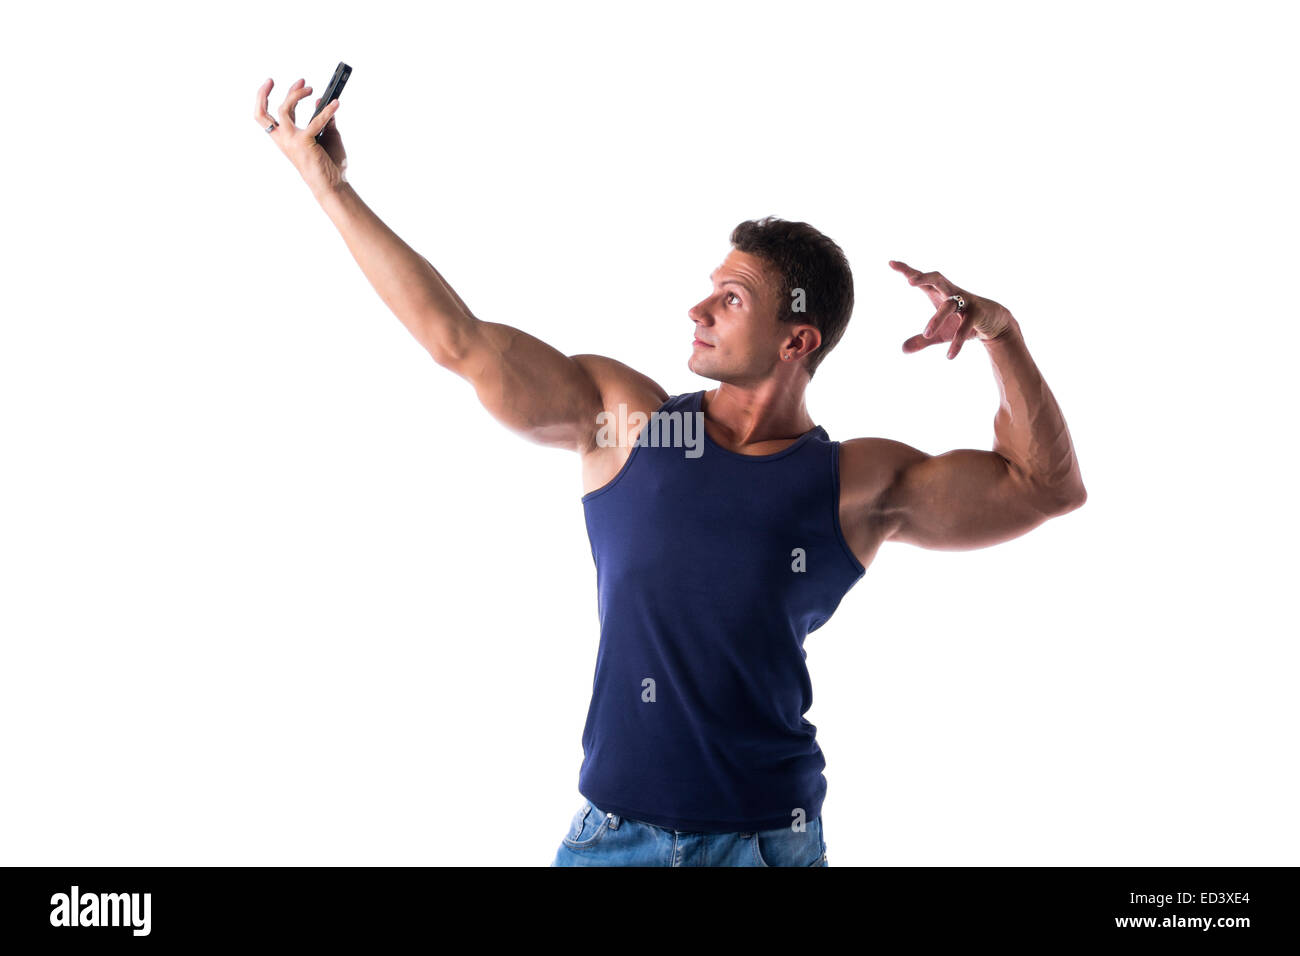 handsome-muscular-young-man-taking-selfi